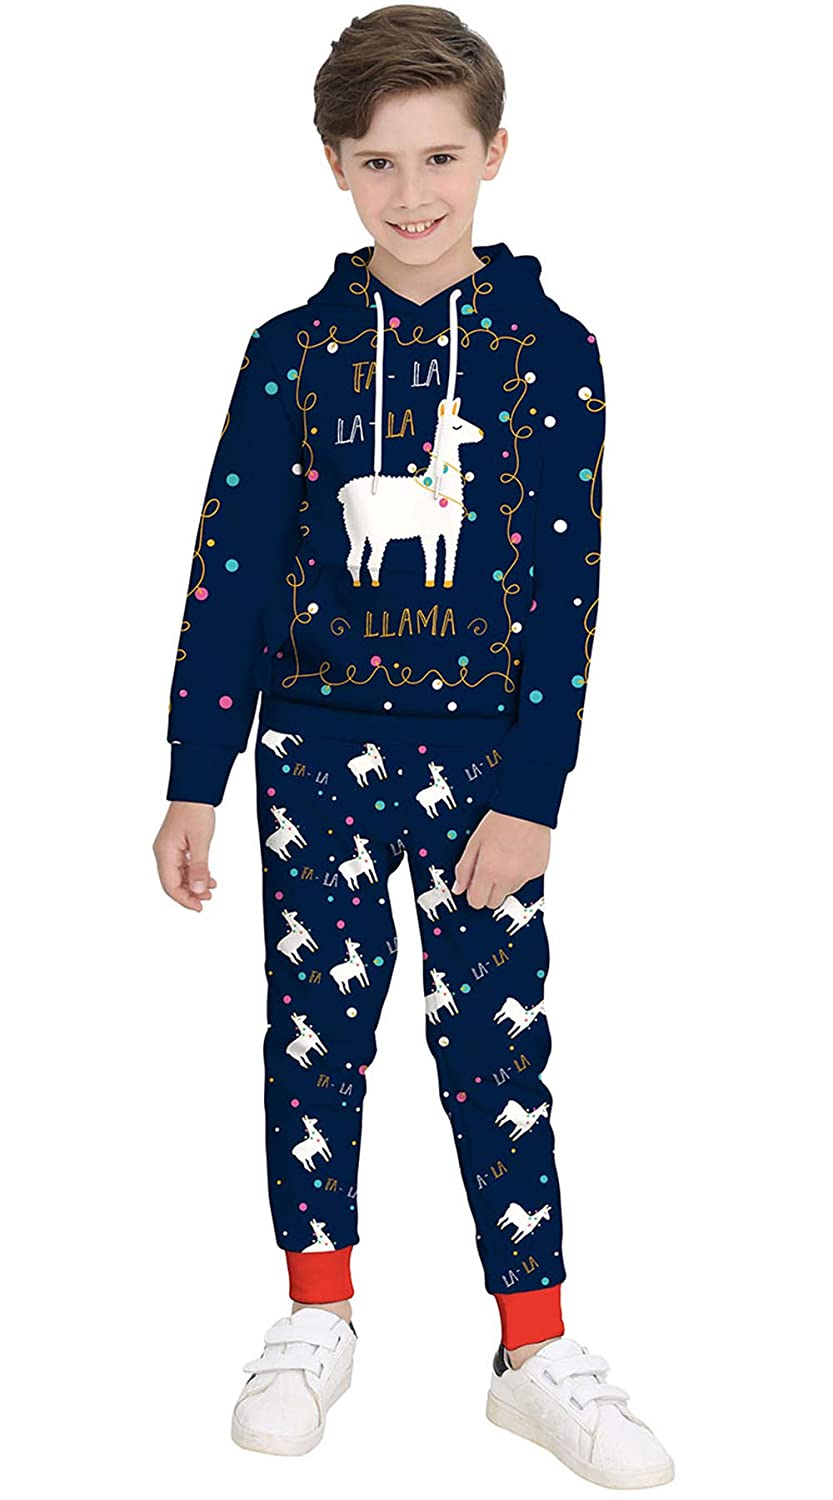 KIDVOVOU Boys Girls Christmas Outfit Hoodie Sweatshirt Tops Sweatsuit Pants Set 4-13Y